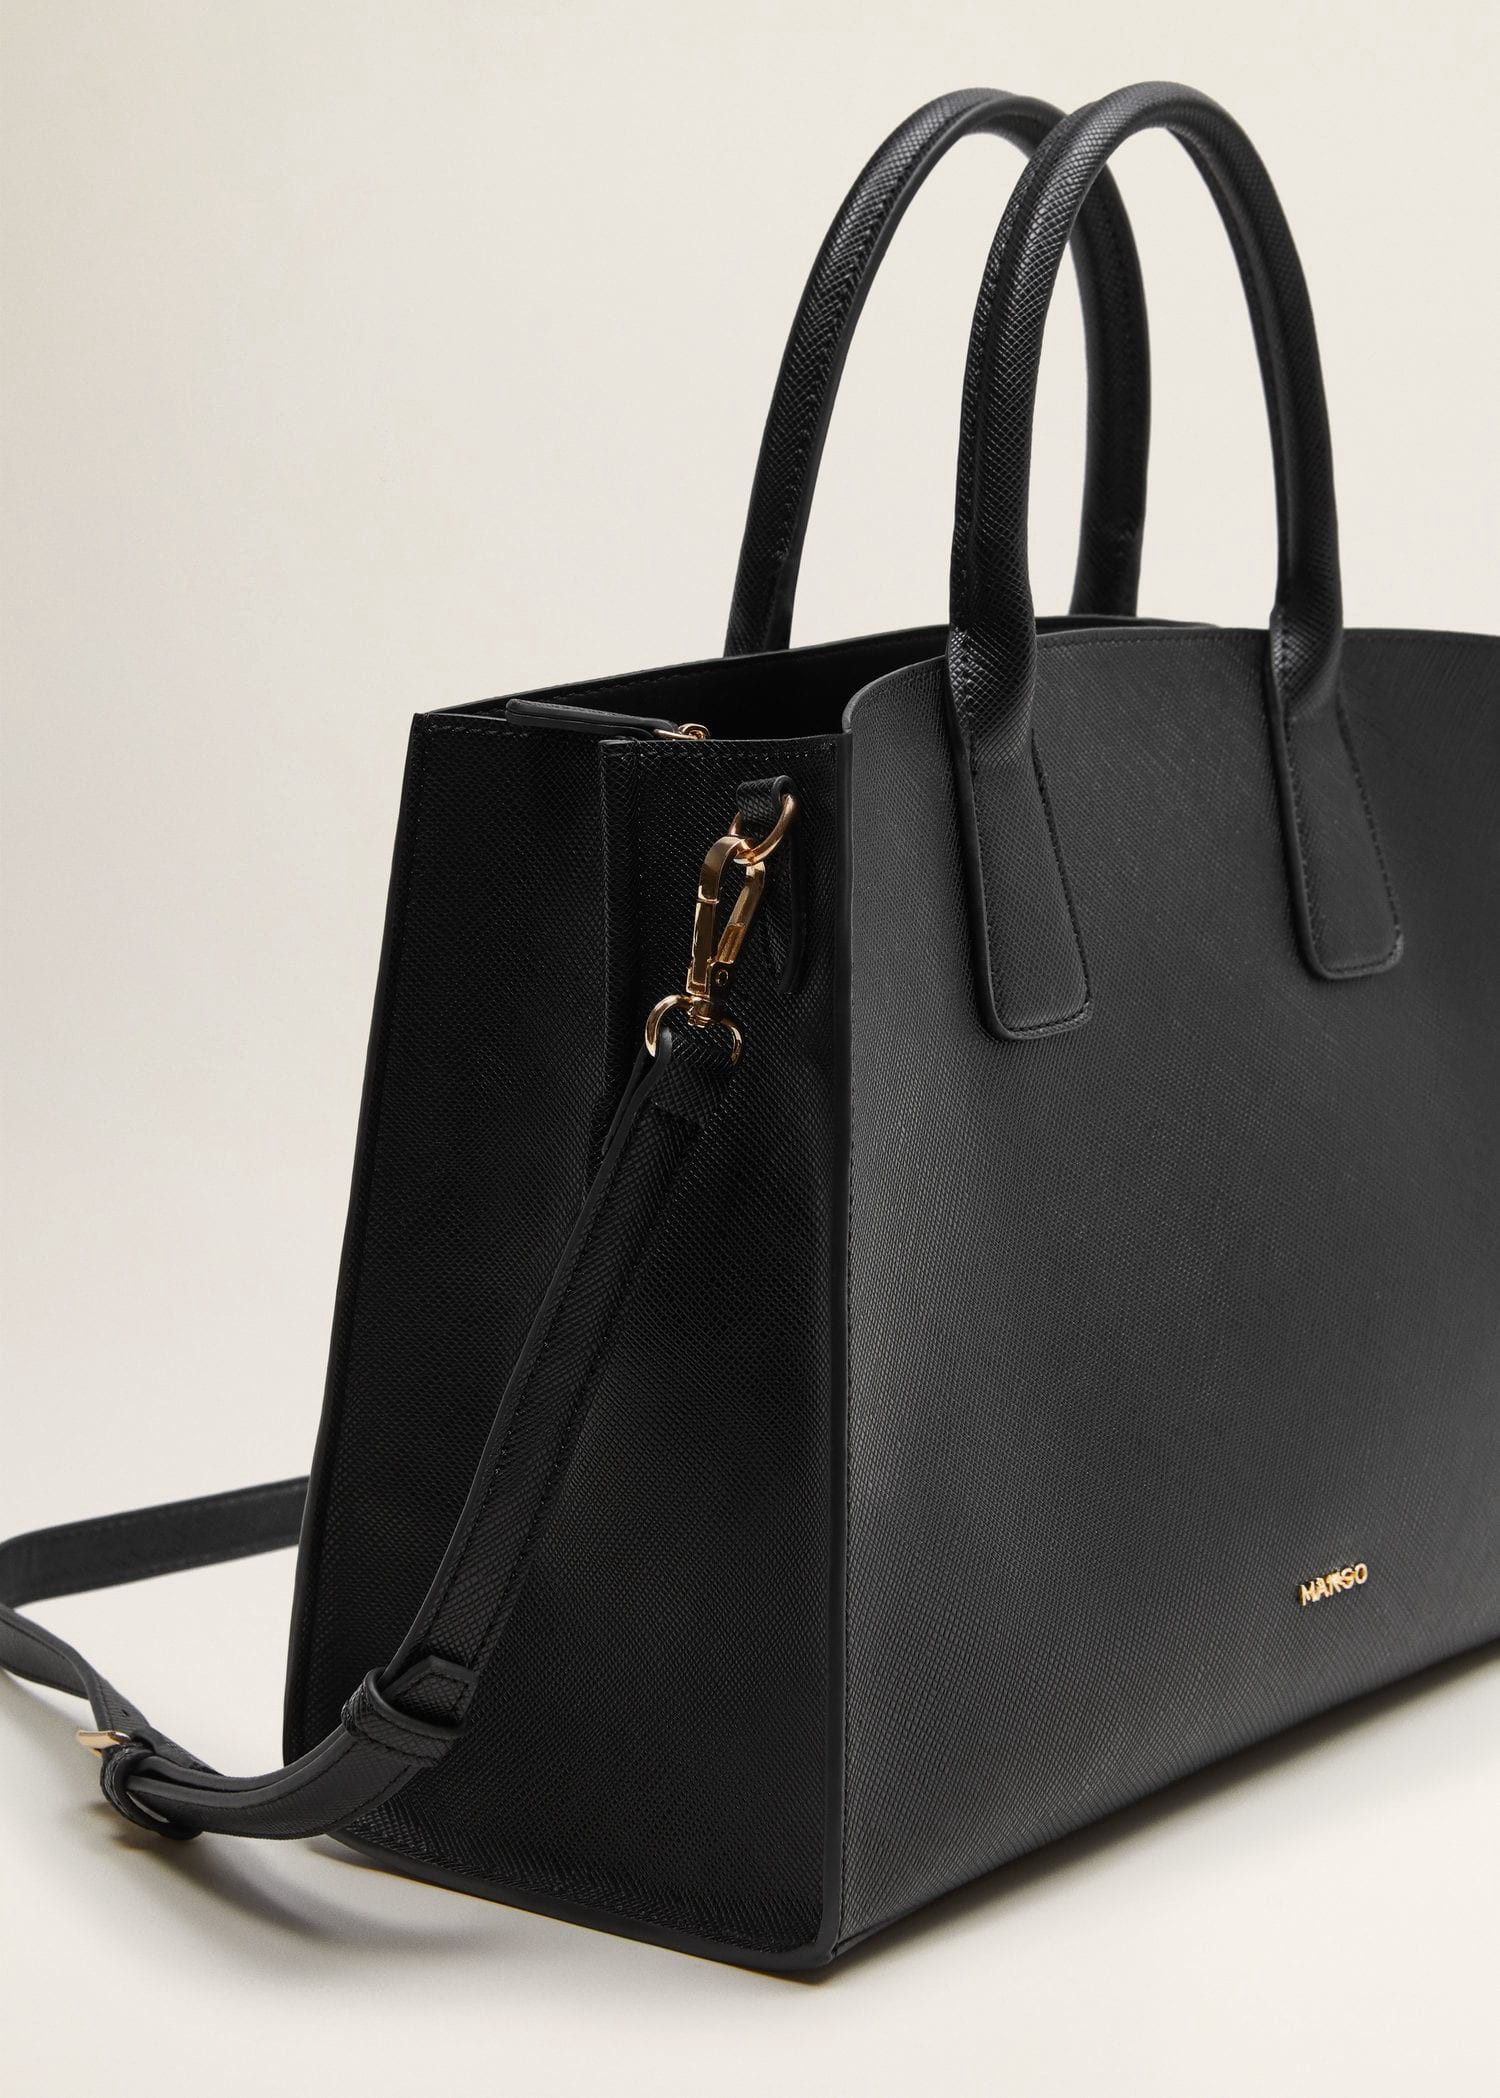 14243d2a56 Saffiano-effect tote bag by Mango | Products | Bags, Black tote bag ...